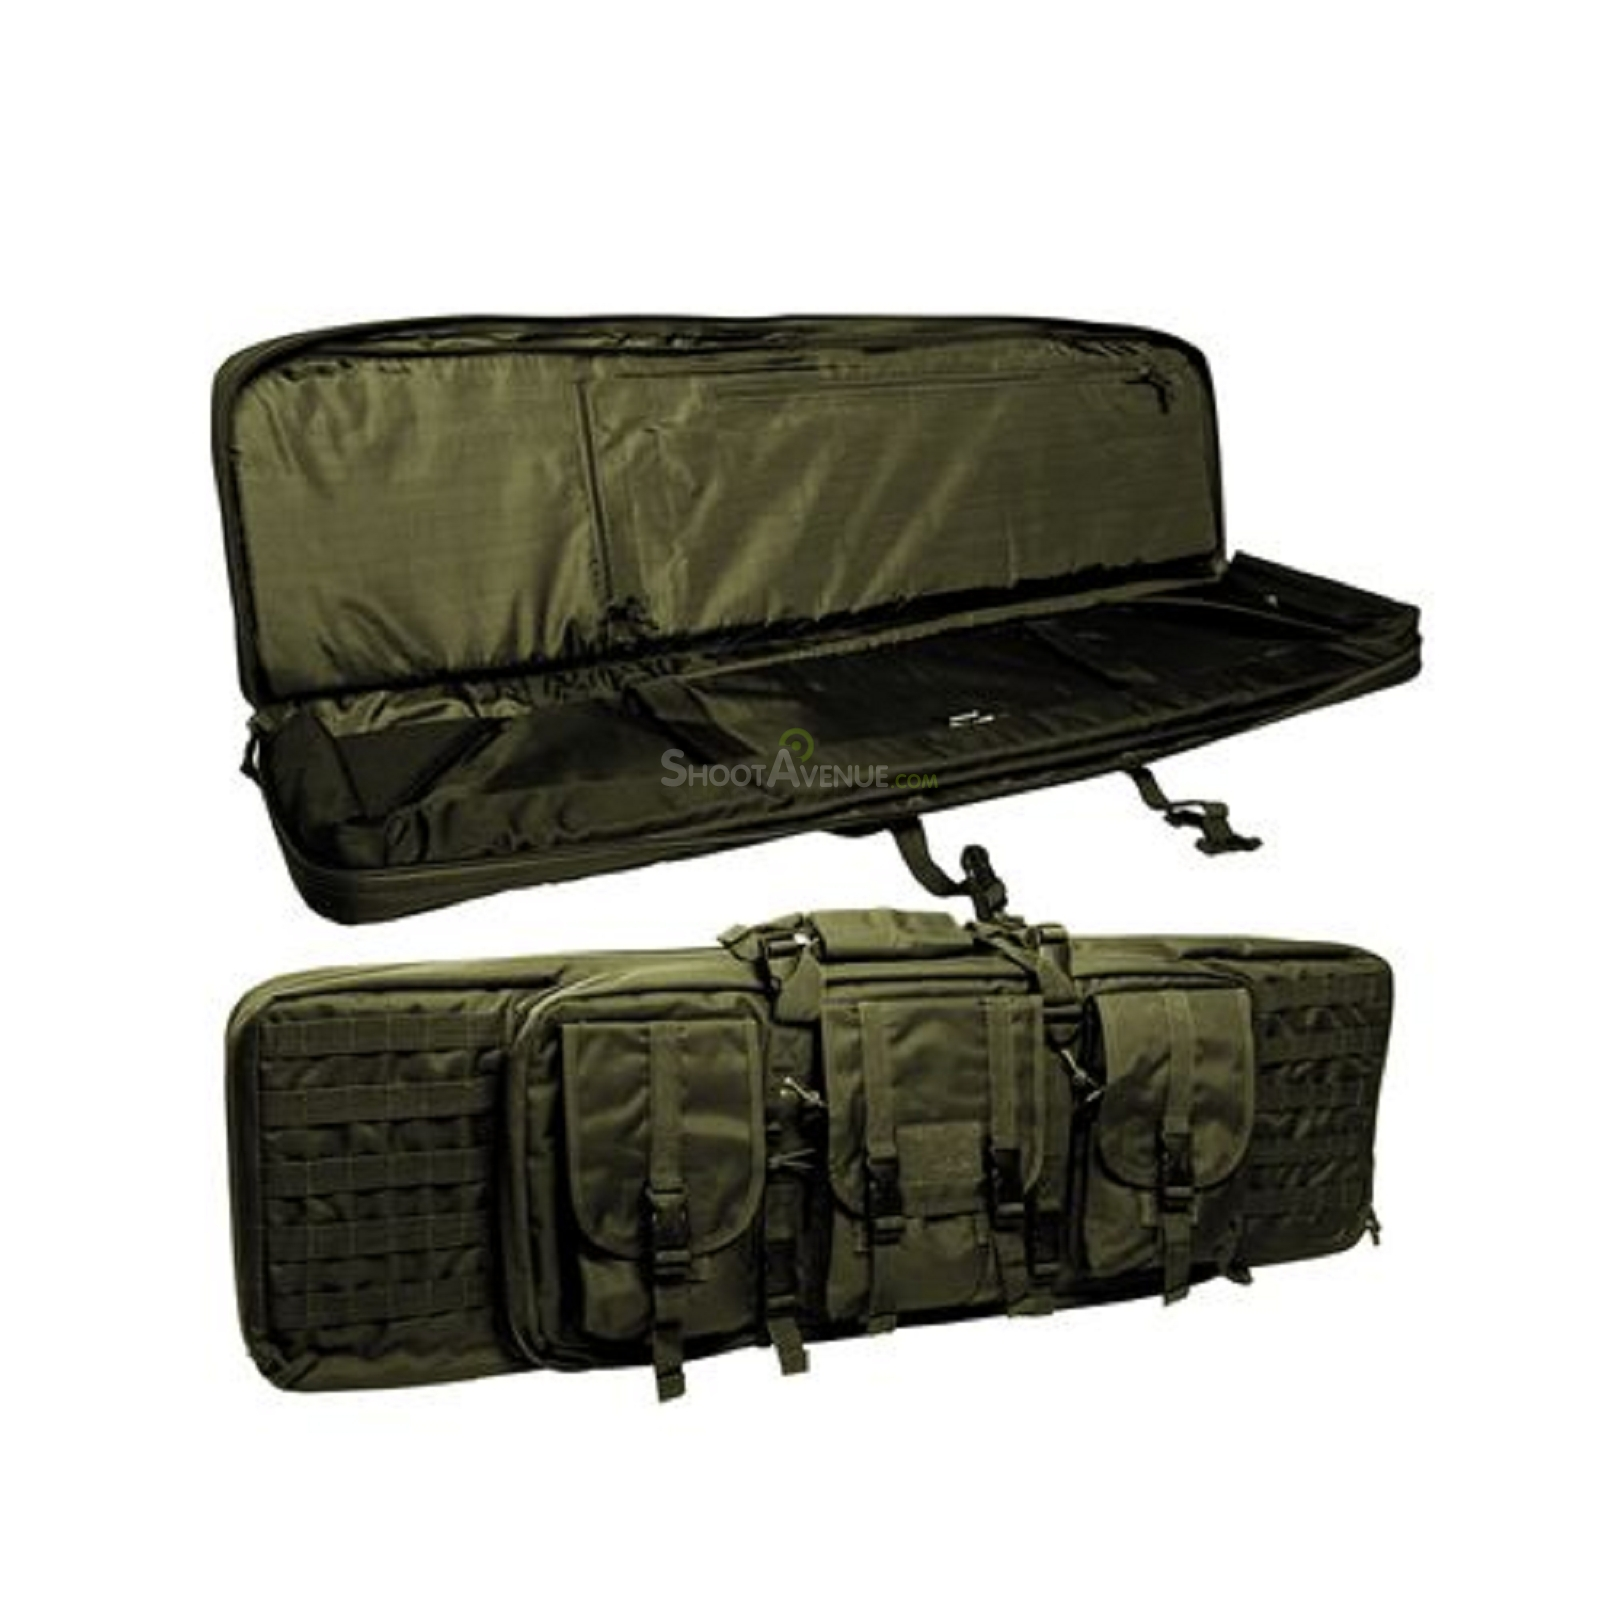 housse transport fusil miltec olive 105 27 7 airsoft